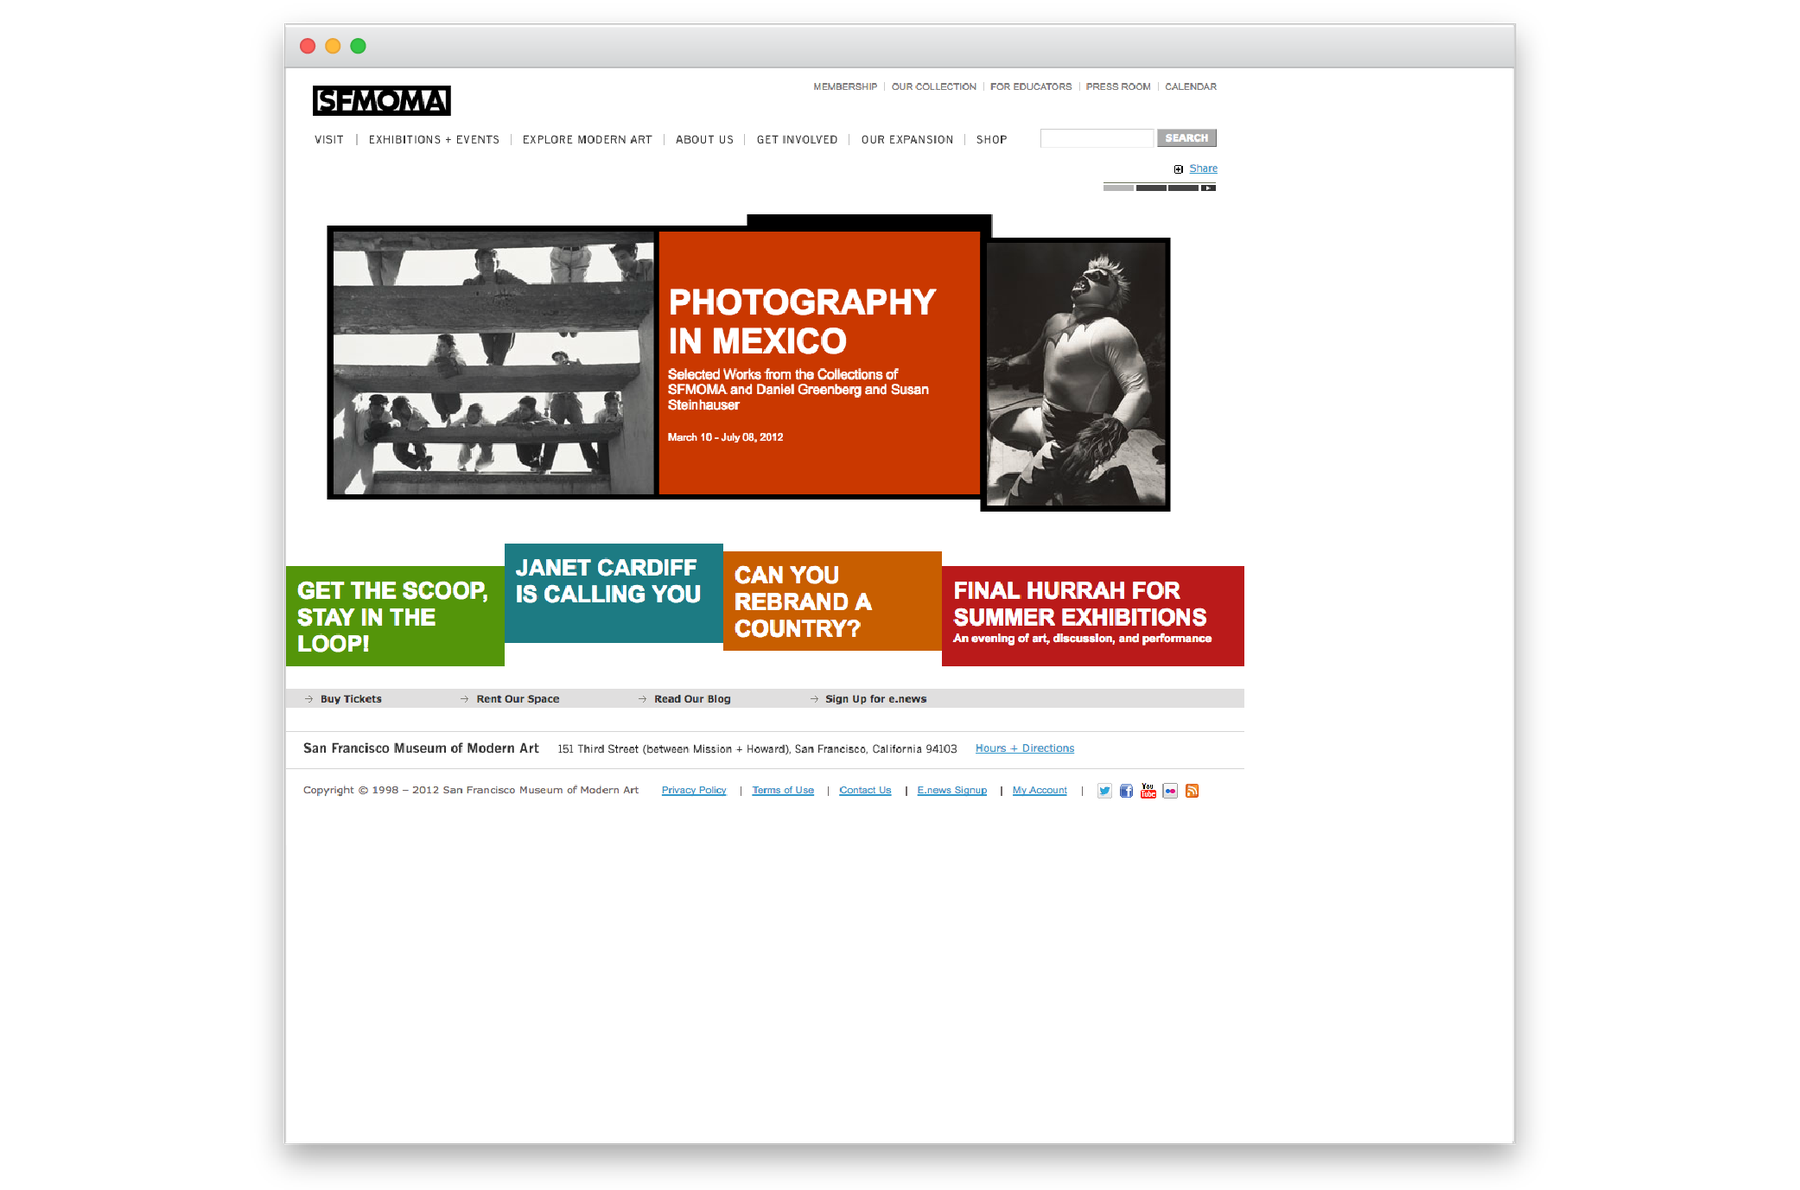 Screenshot of old sfmoma.org website